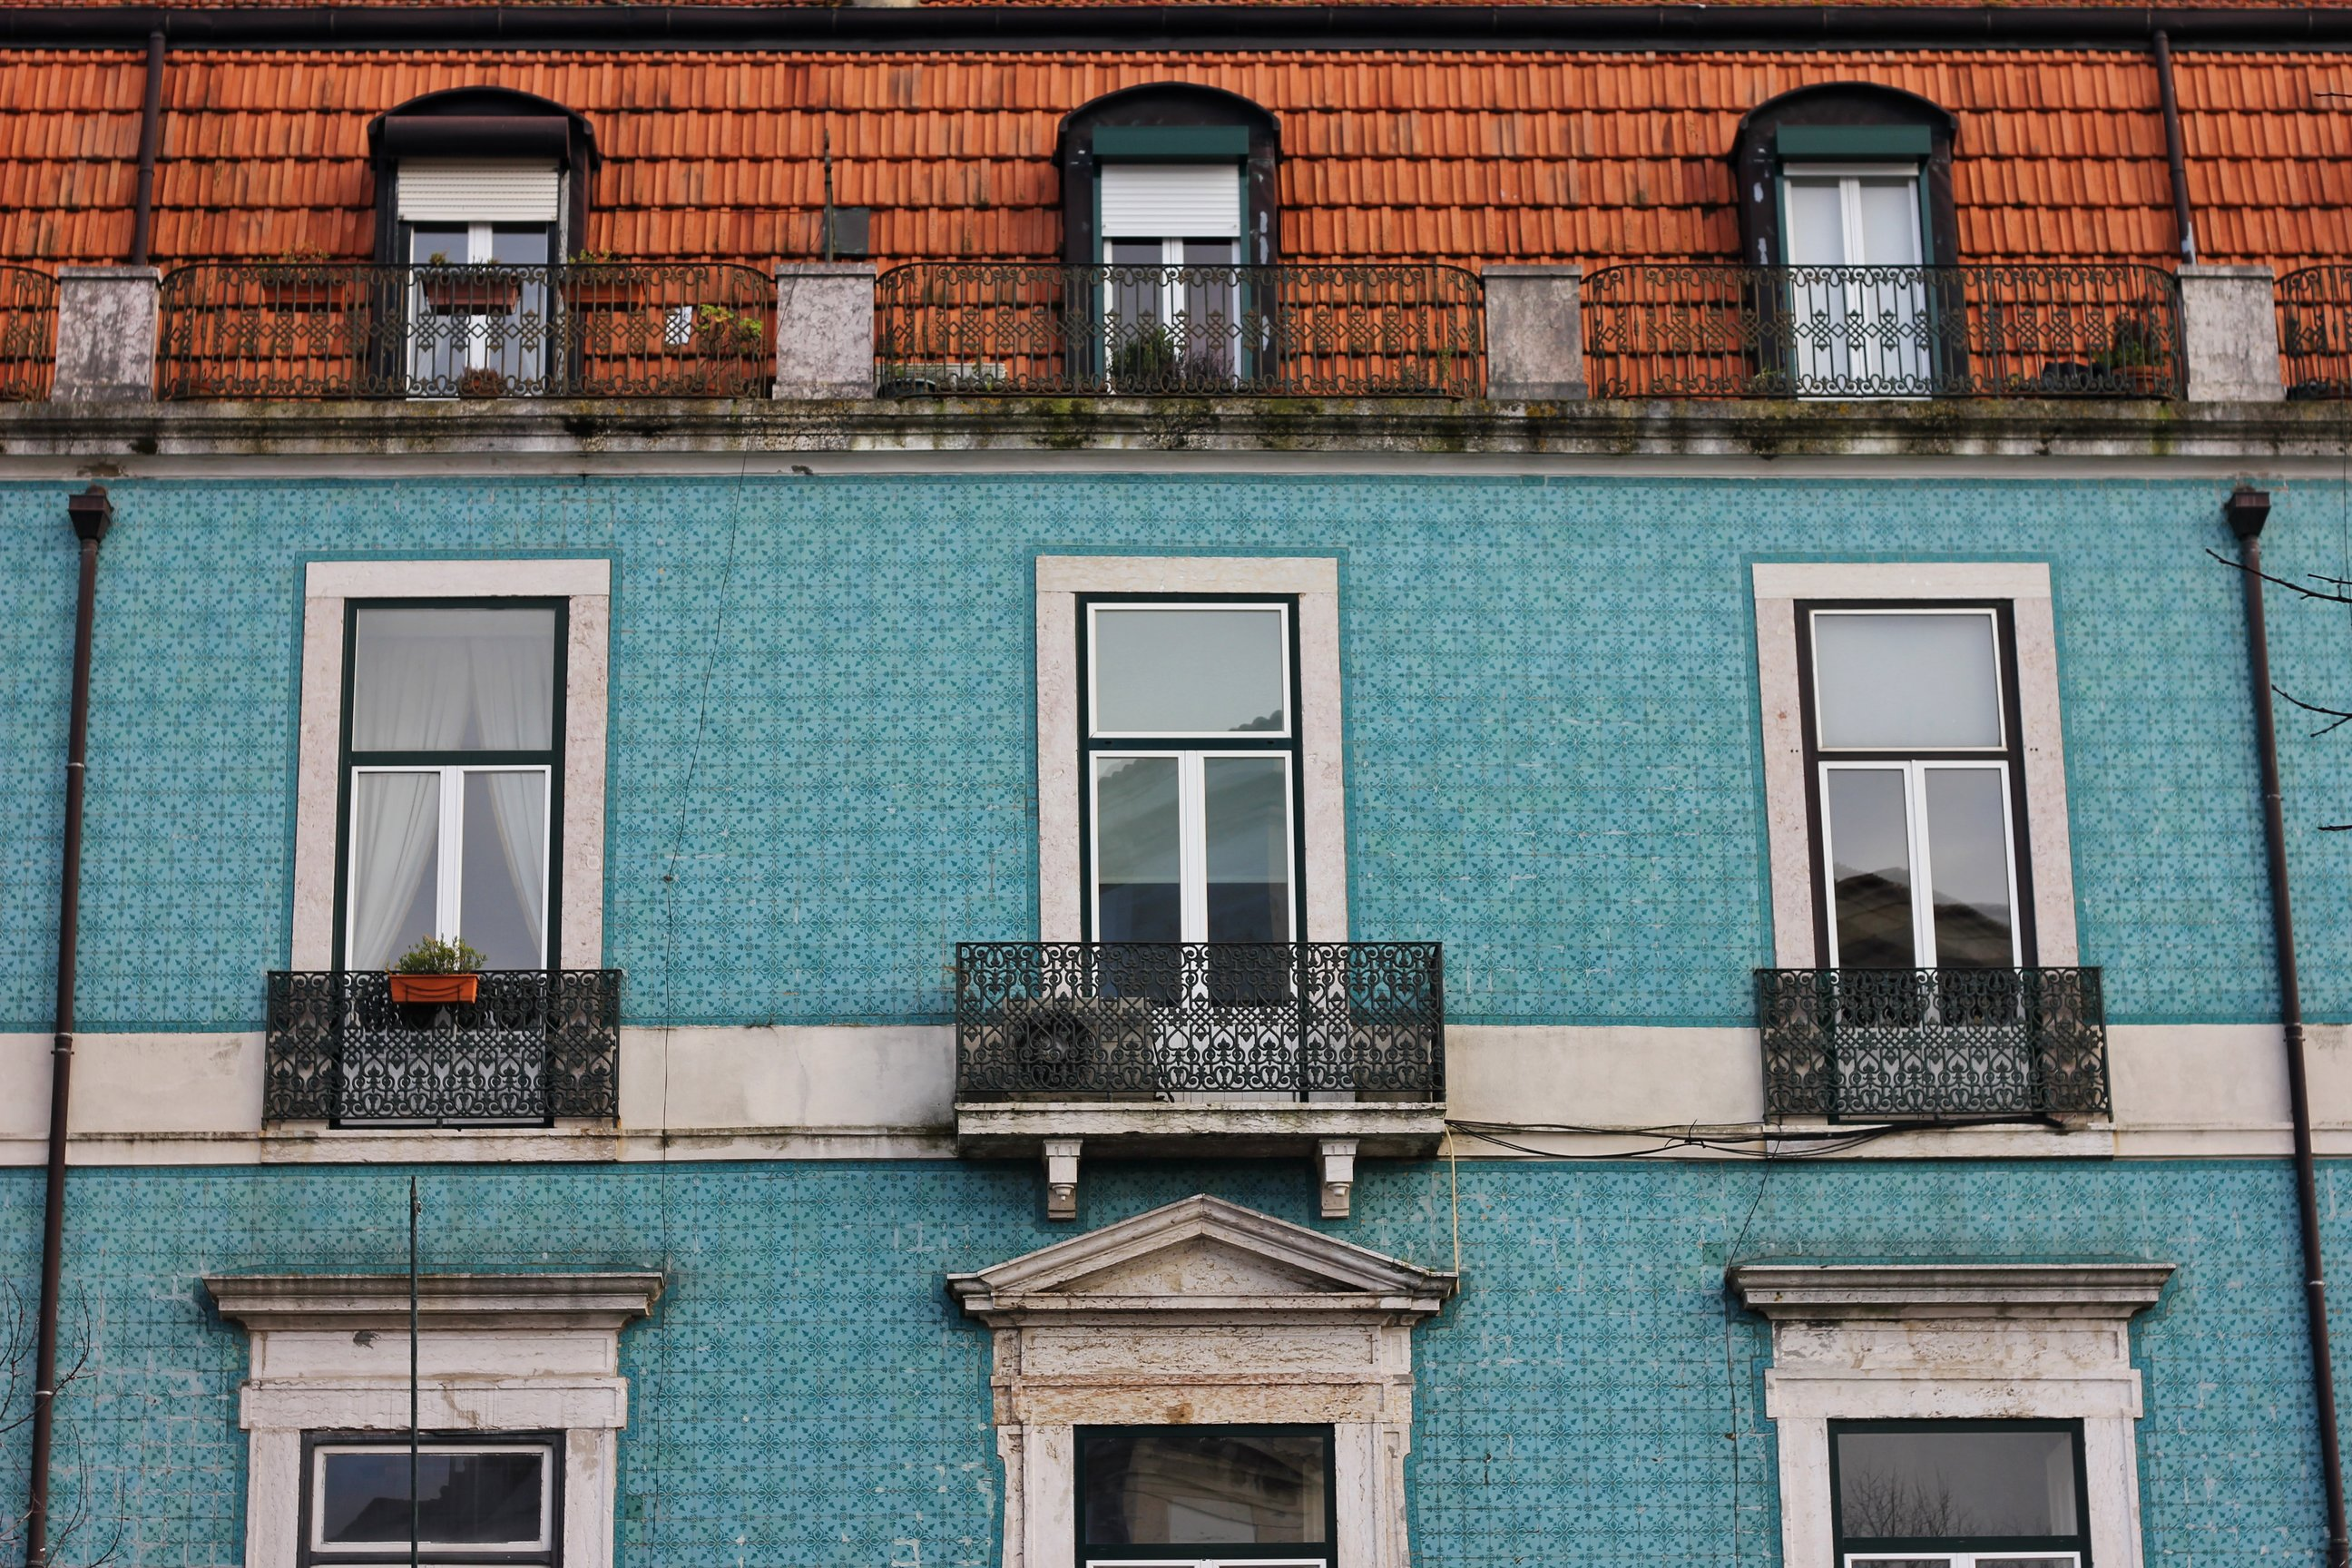 Azulejo buildings in Lisbon, Portugal